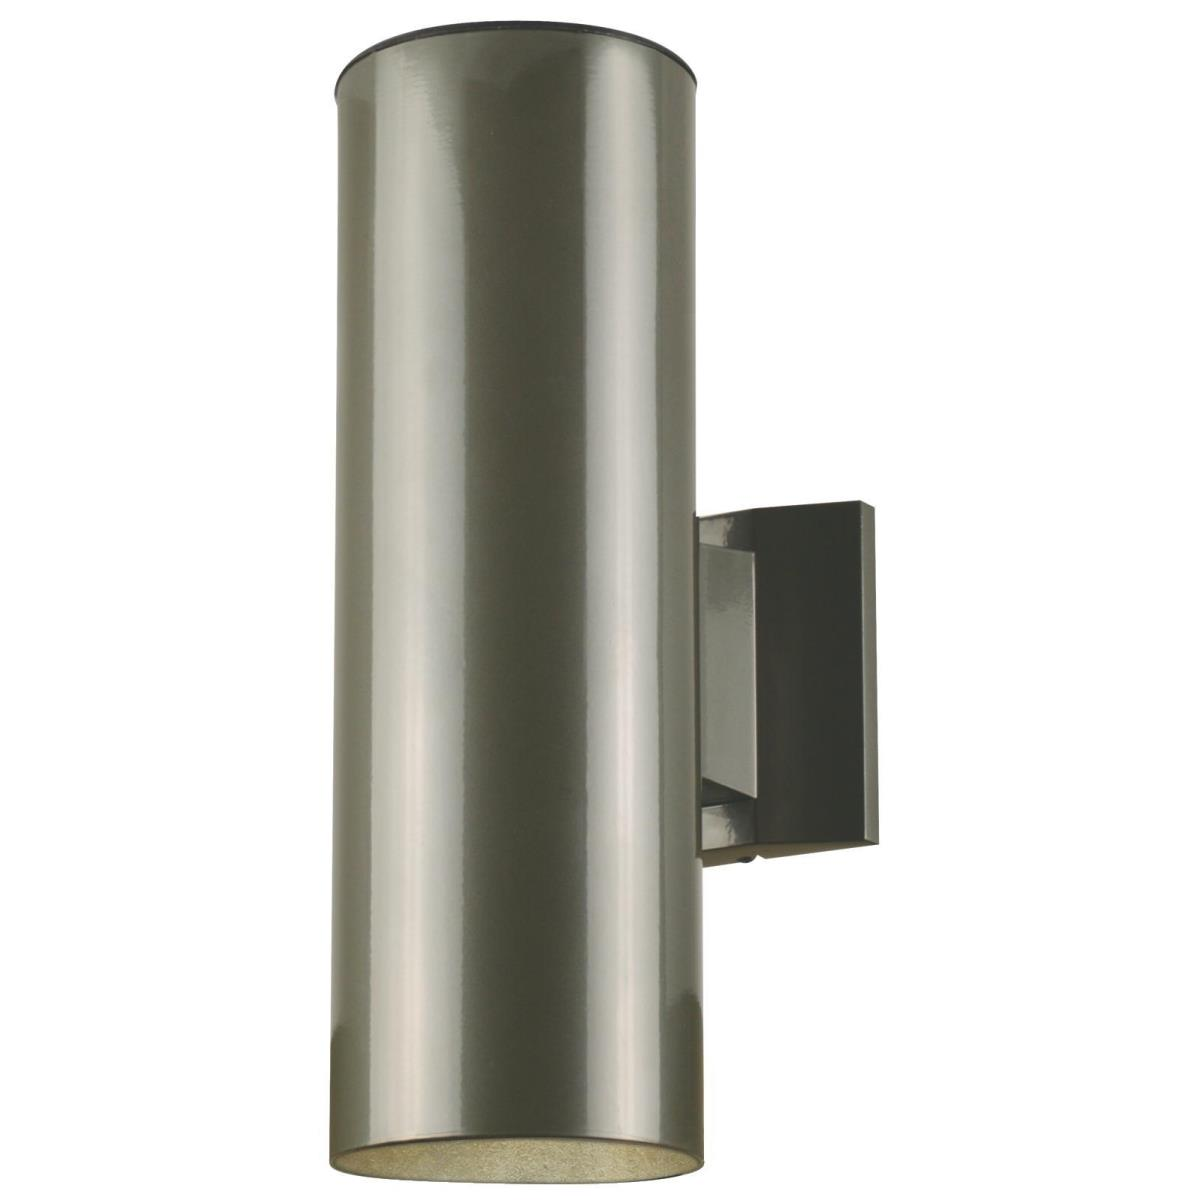 2 Light Up and Down Light Wall Fixture Polished Graphite Finish